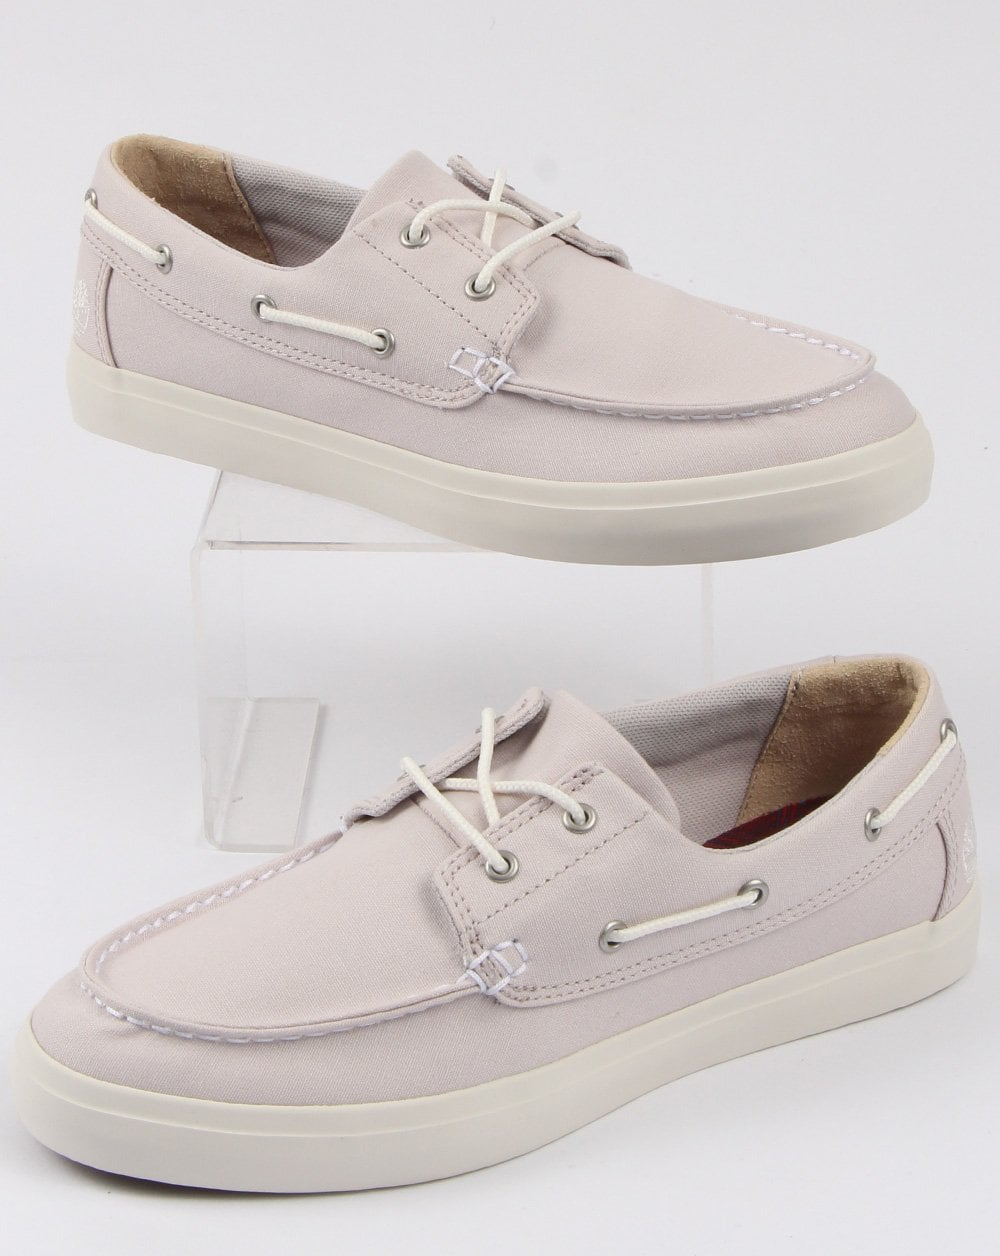 Derivación acumular caja de cartón  Timberland Union Wharf 2 Eye Boat Shoe Light Grey - 80s casual classics